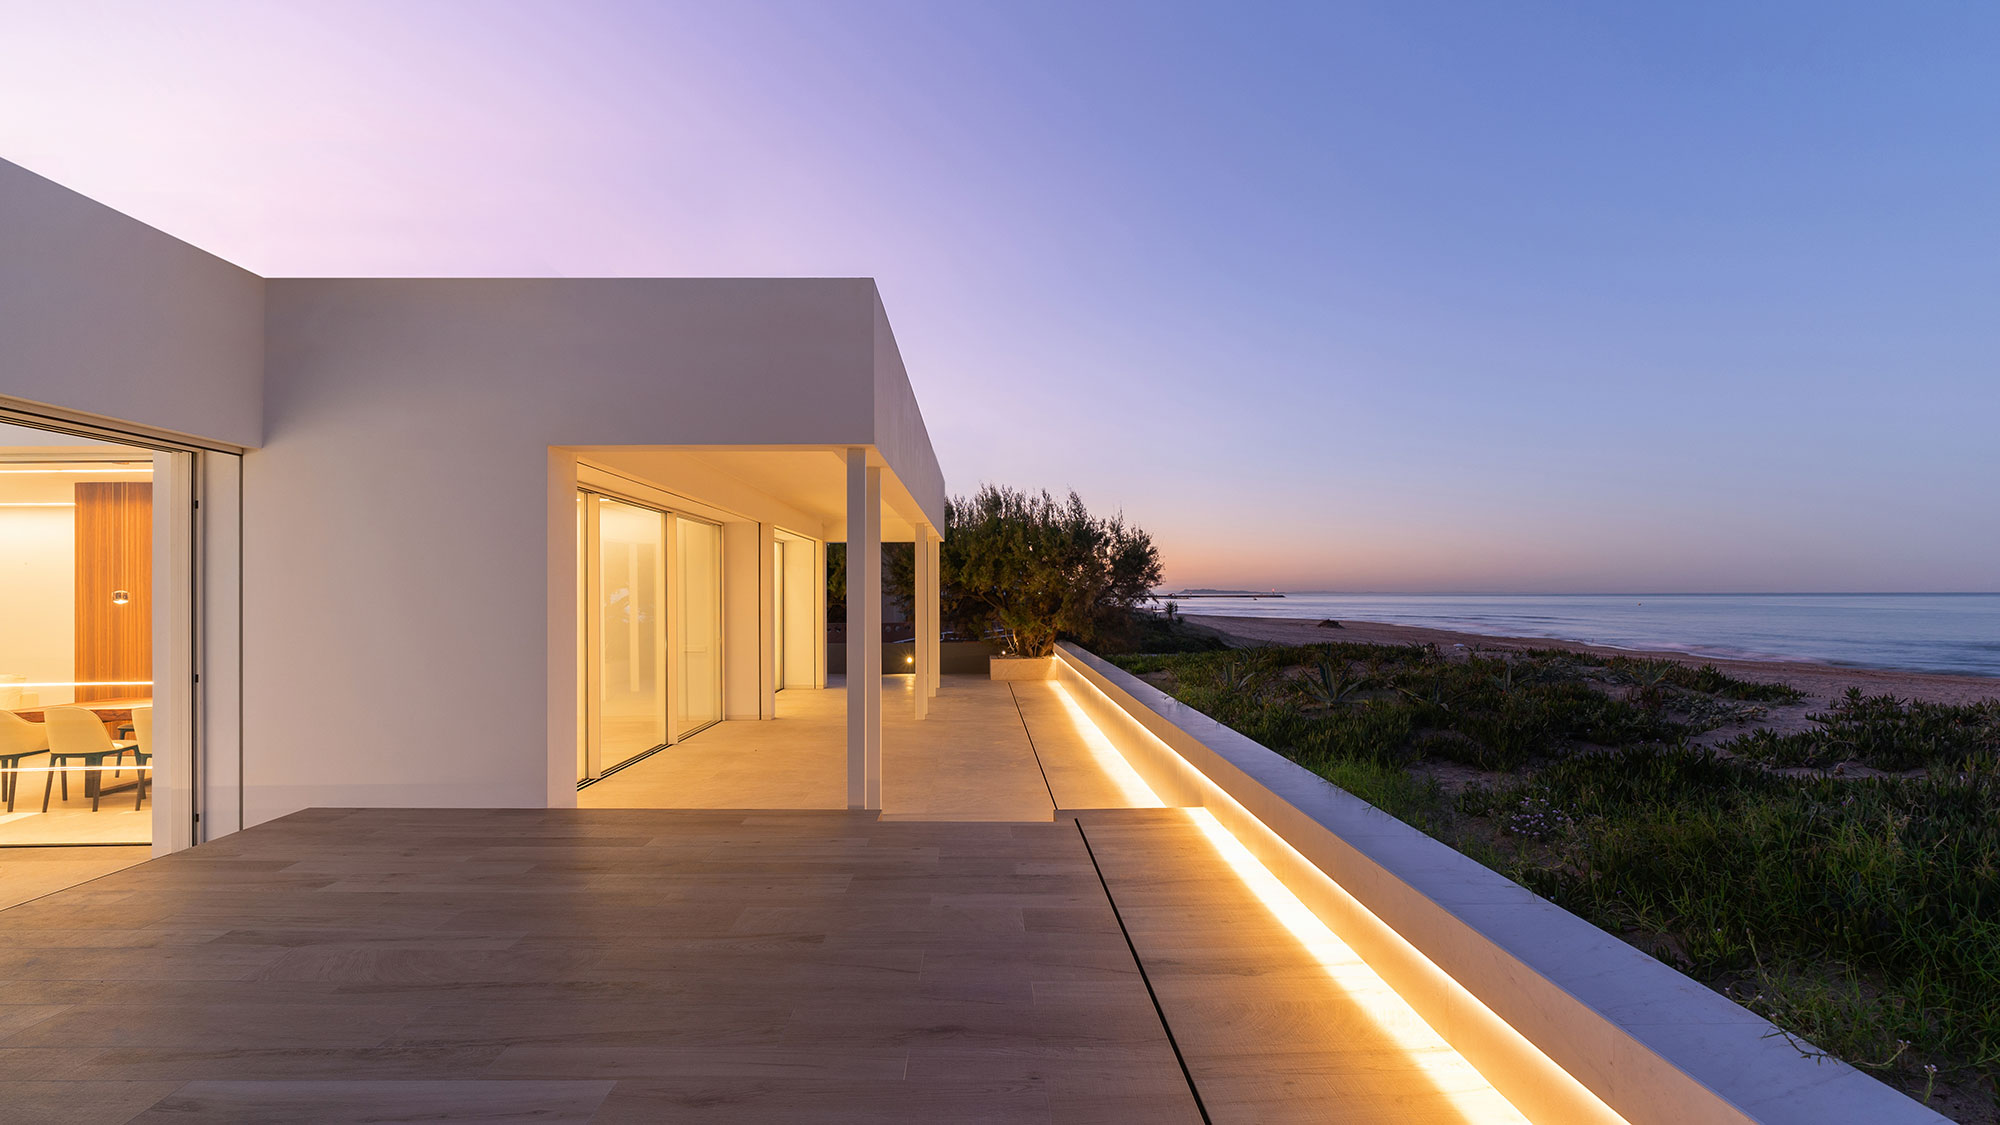 PORCELANOSA Group Projects: Dune House, minimalist architecture's awakening on the shores of the Mediterranean